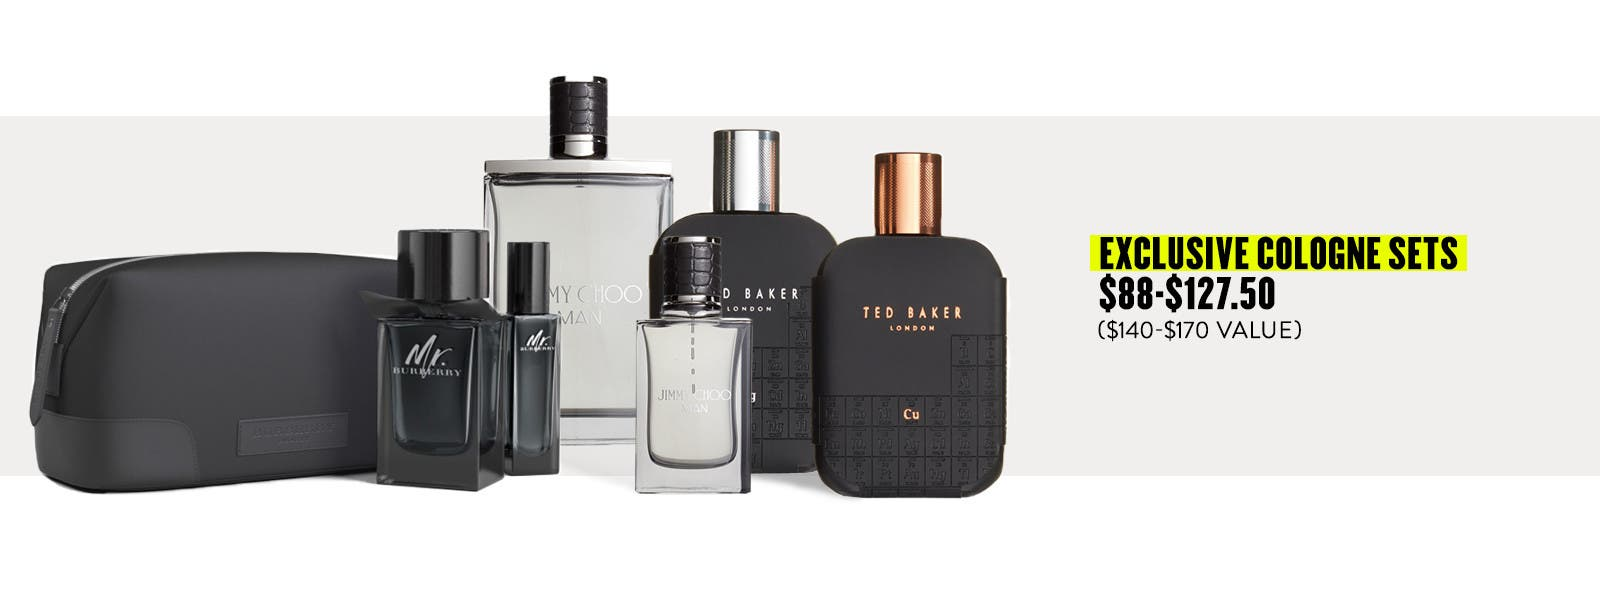 Exclusive cologne sets.